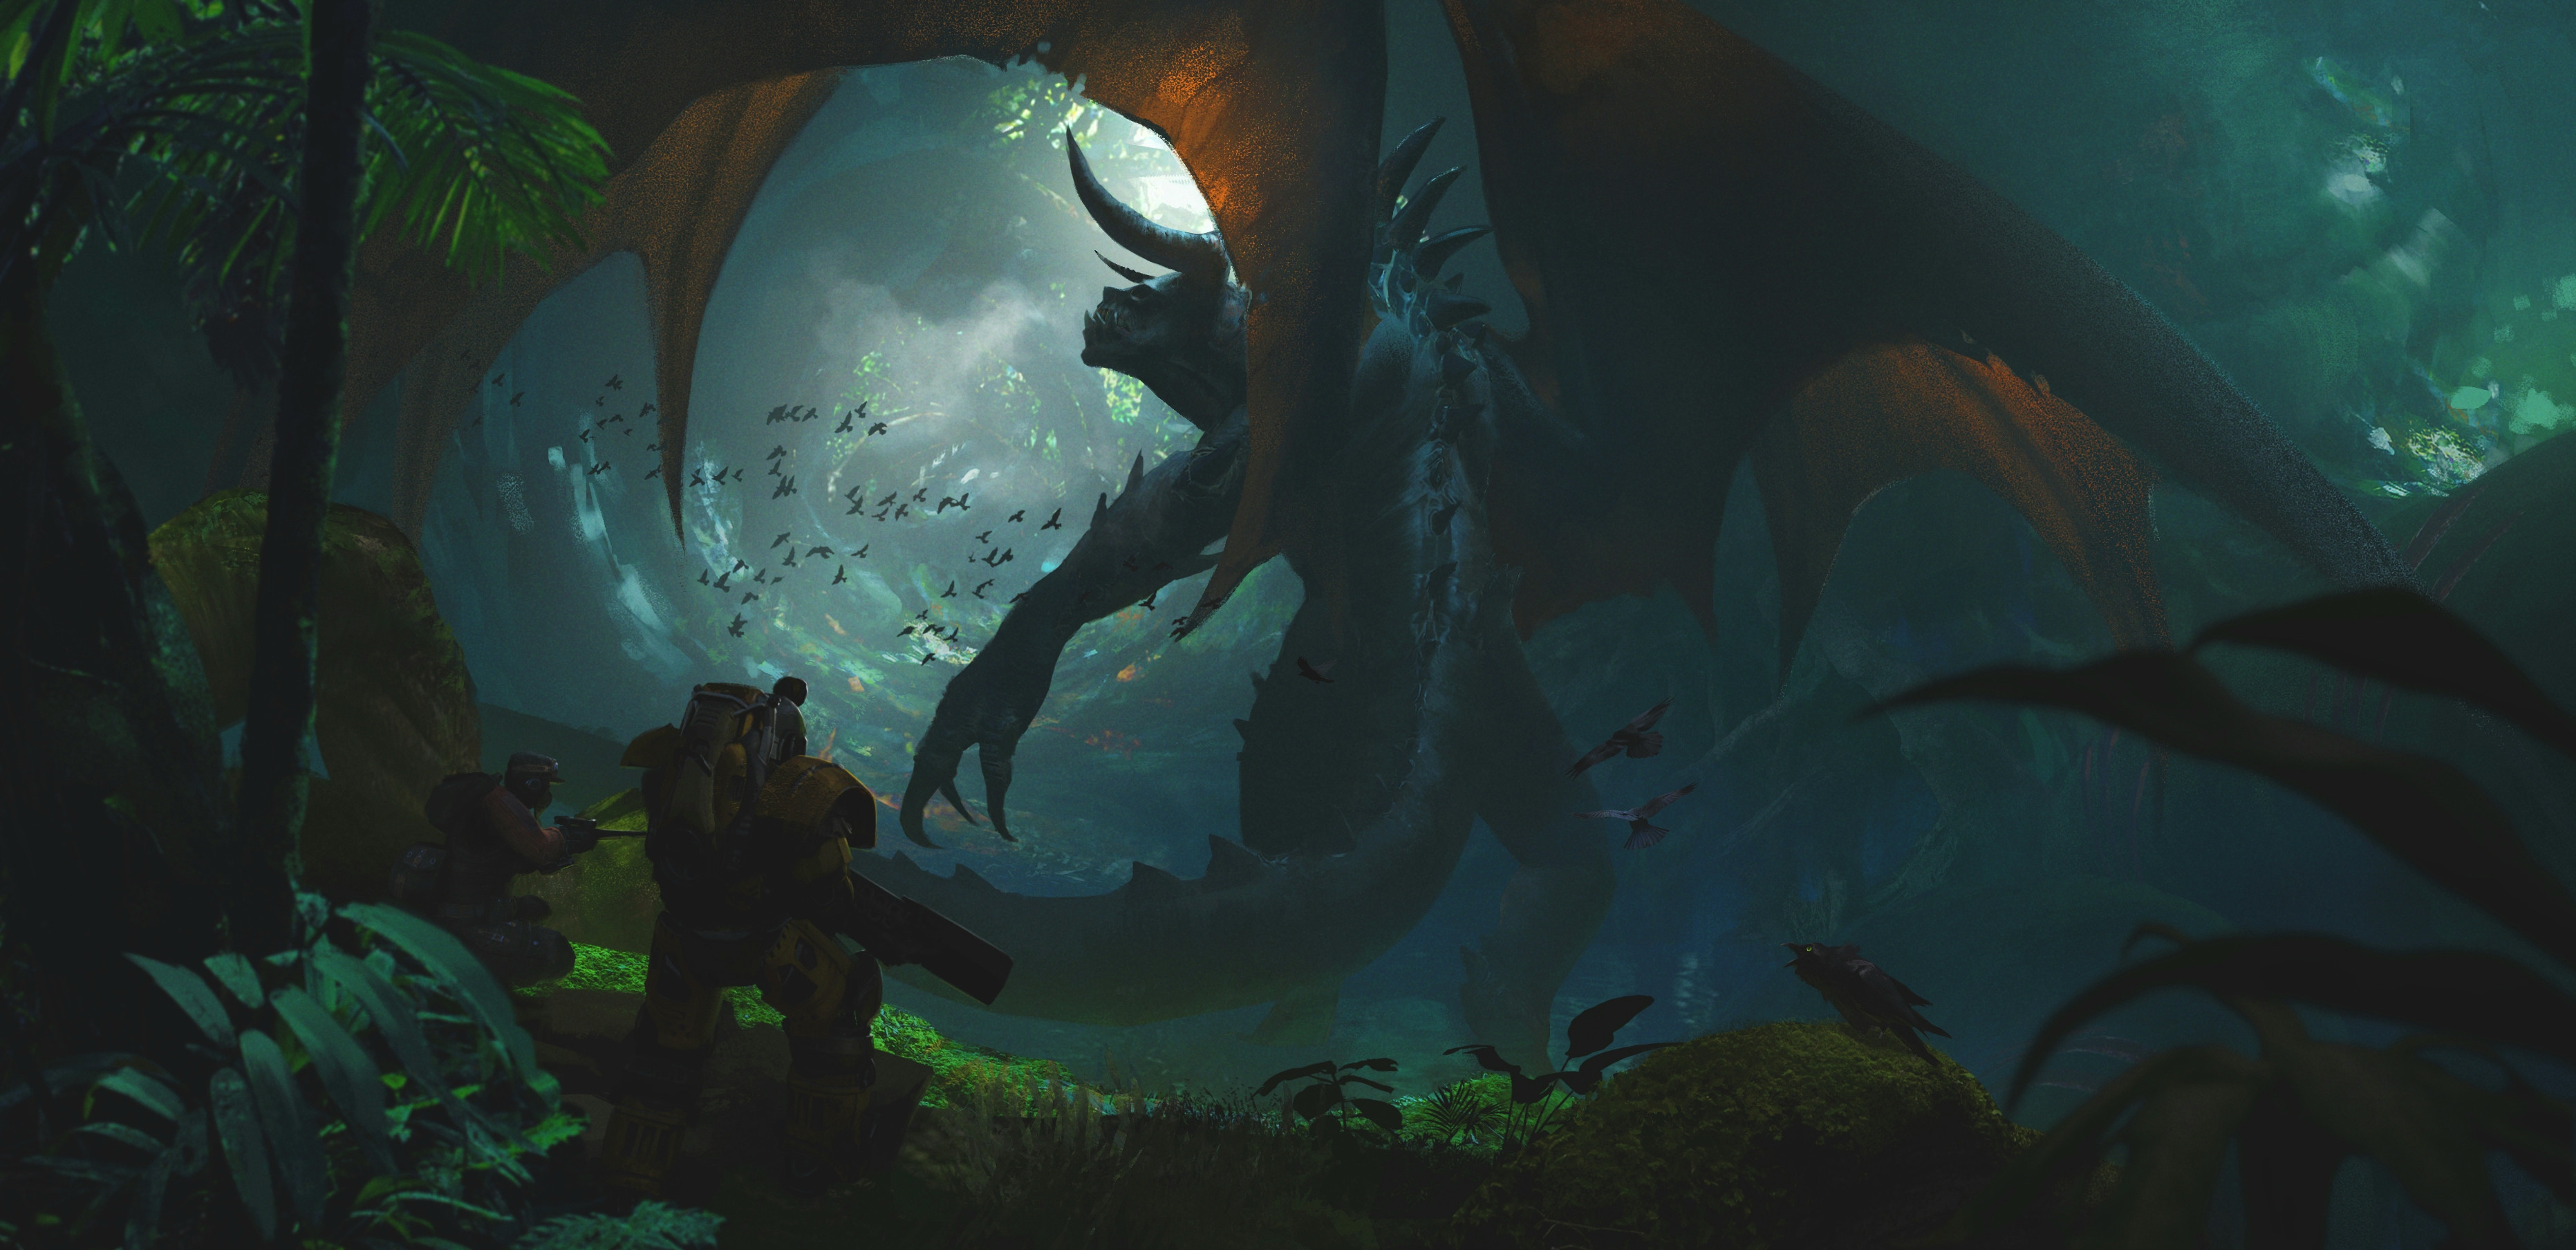 A giant deathclaw mutated with wings.